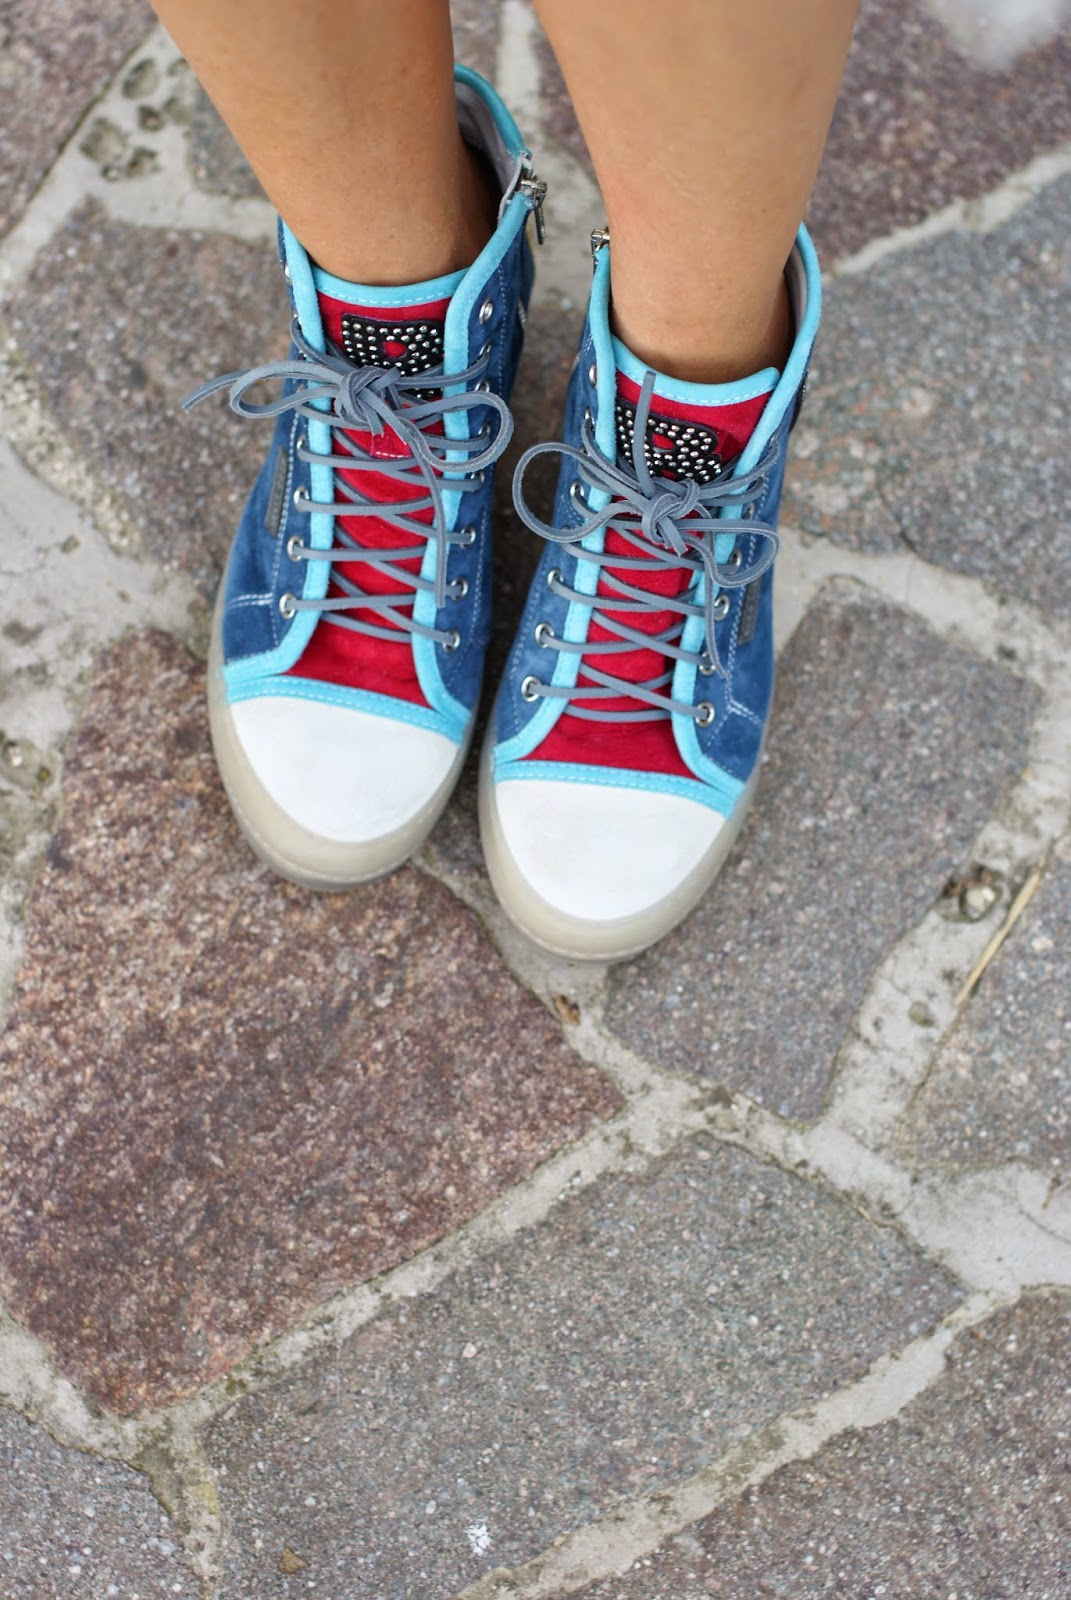 Ruco Line Nicy multicolor sneakers, Ruco Line fall winter 2014 2015, Fashion and Cookies, fashion blogger